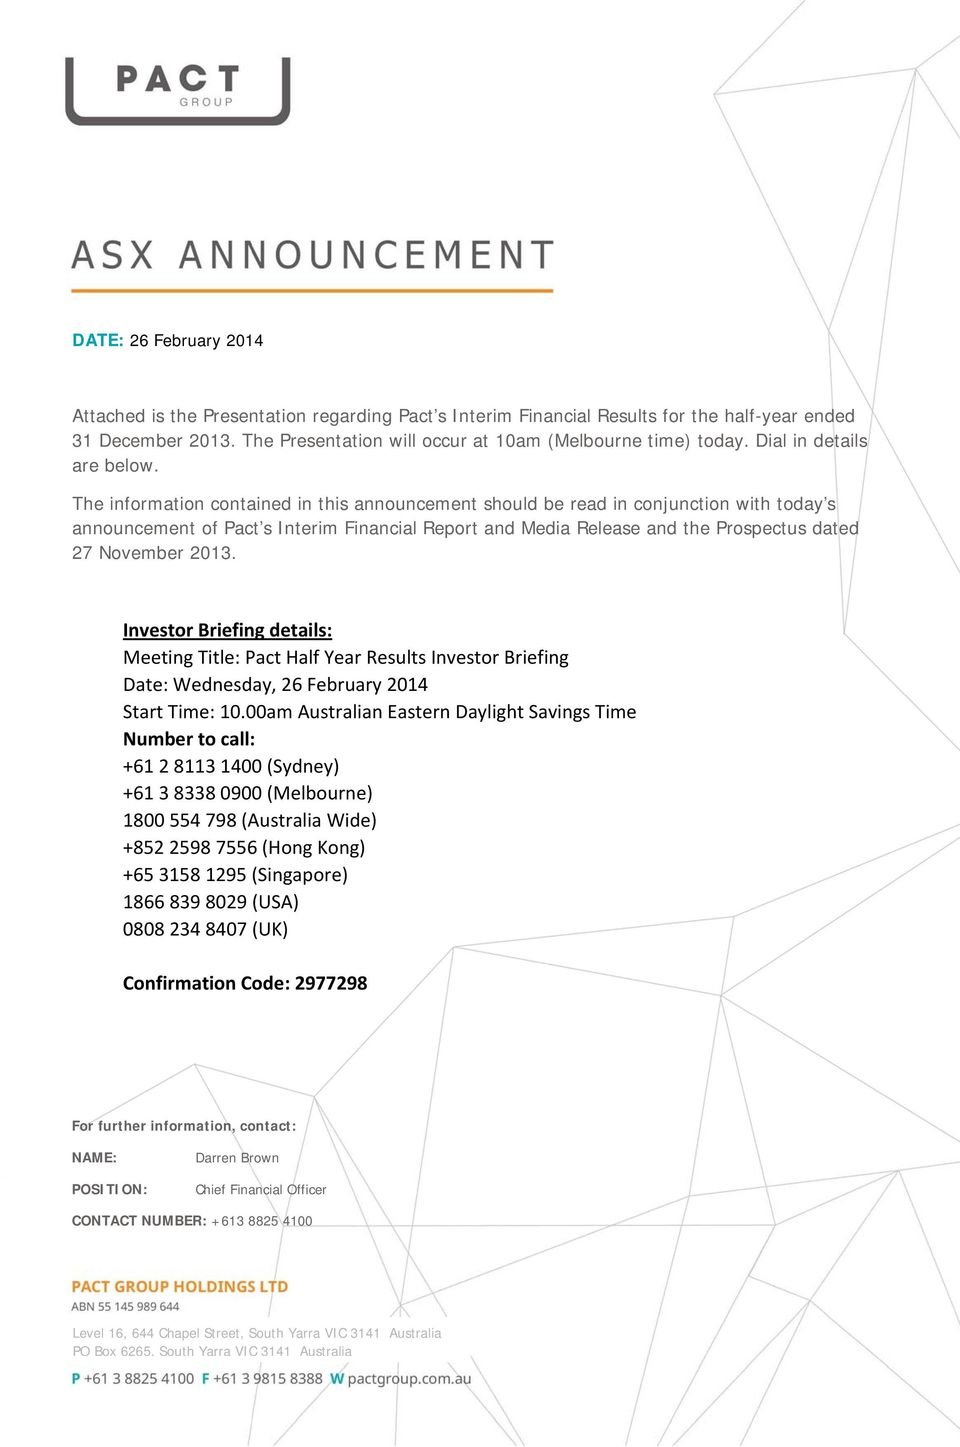 The information contained in this announcement should be read in conjunction with today s announcement of Pact s Interim Financial Report and Media Release and the Prospectus dated 27 November 2013.